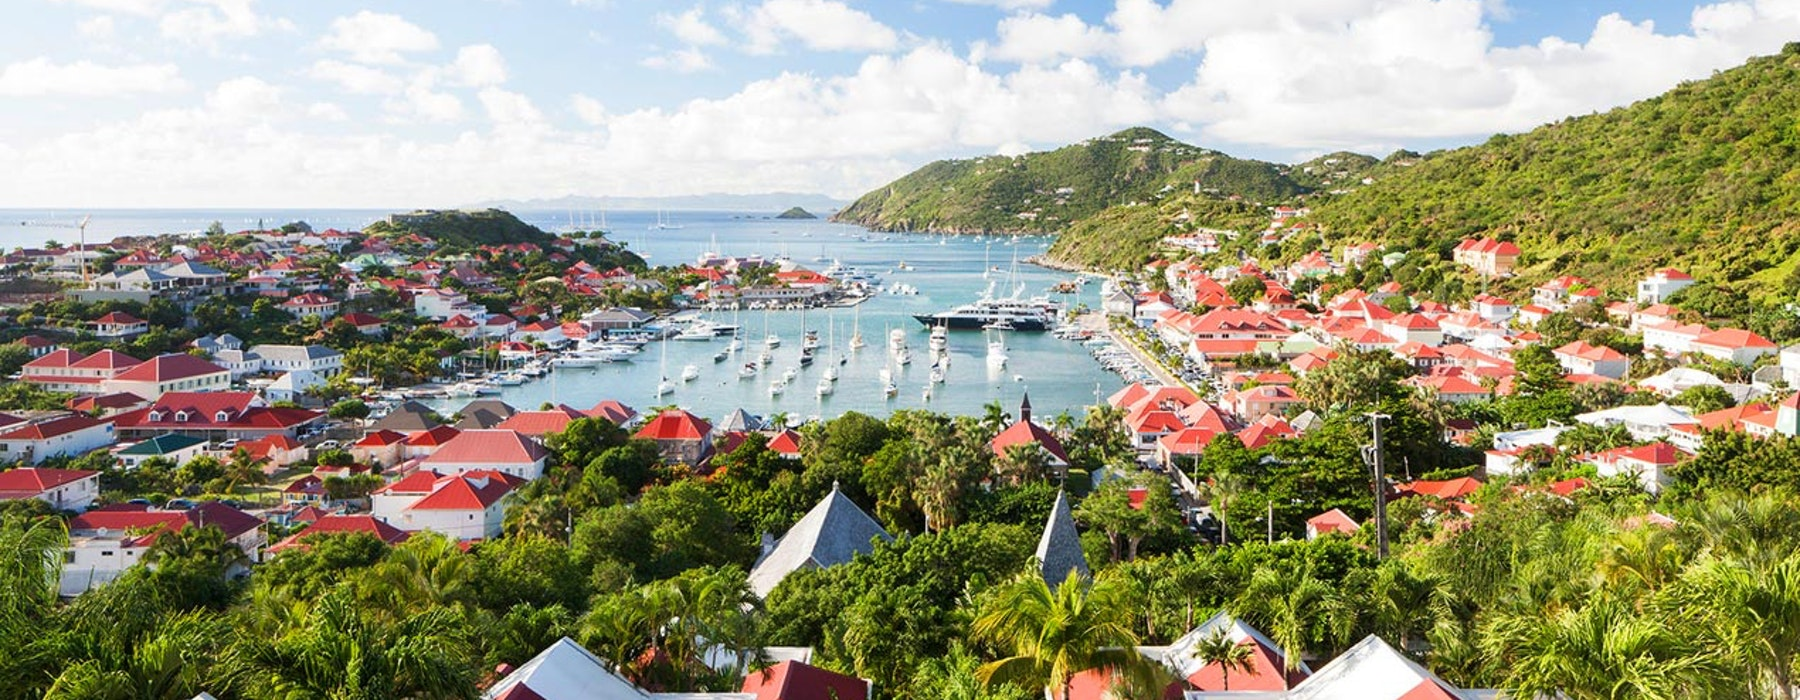 Caribbean Leeward Islands Yacht Charters